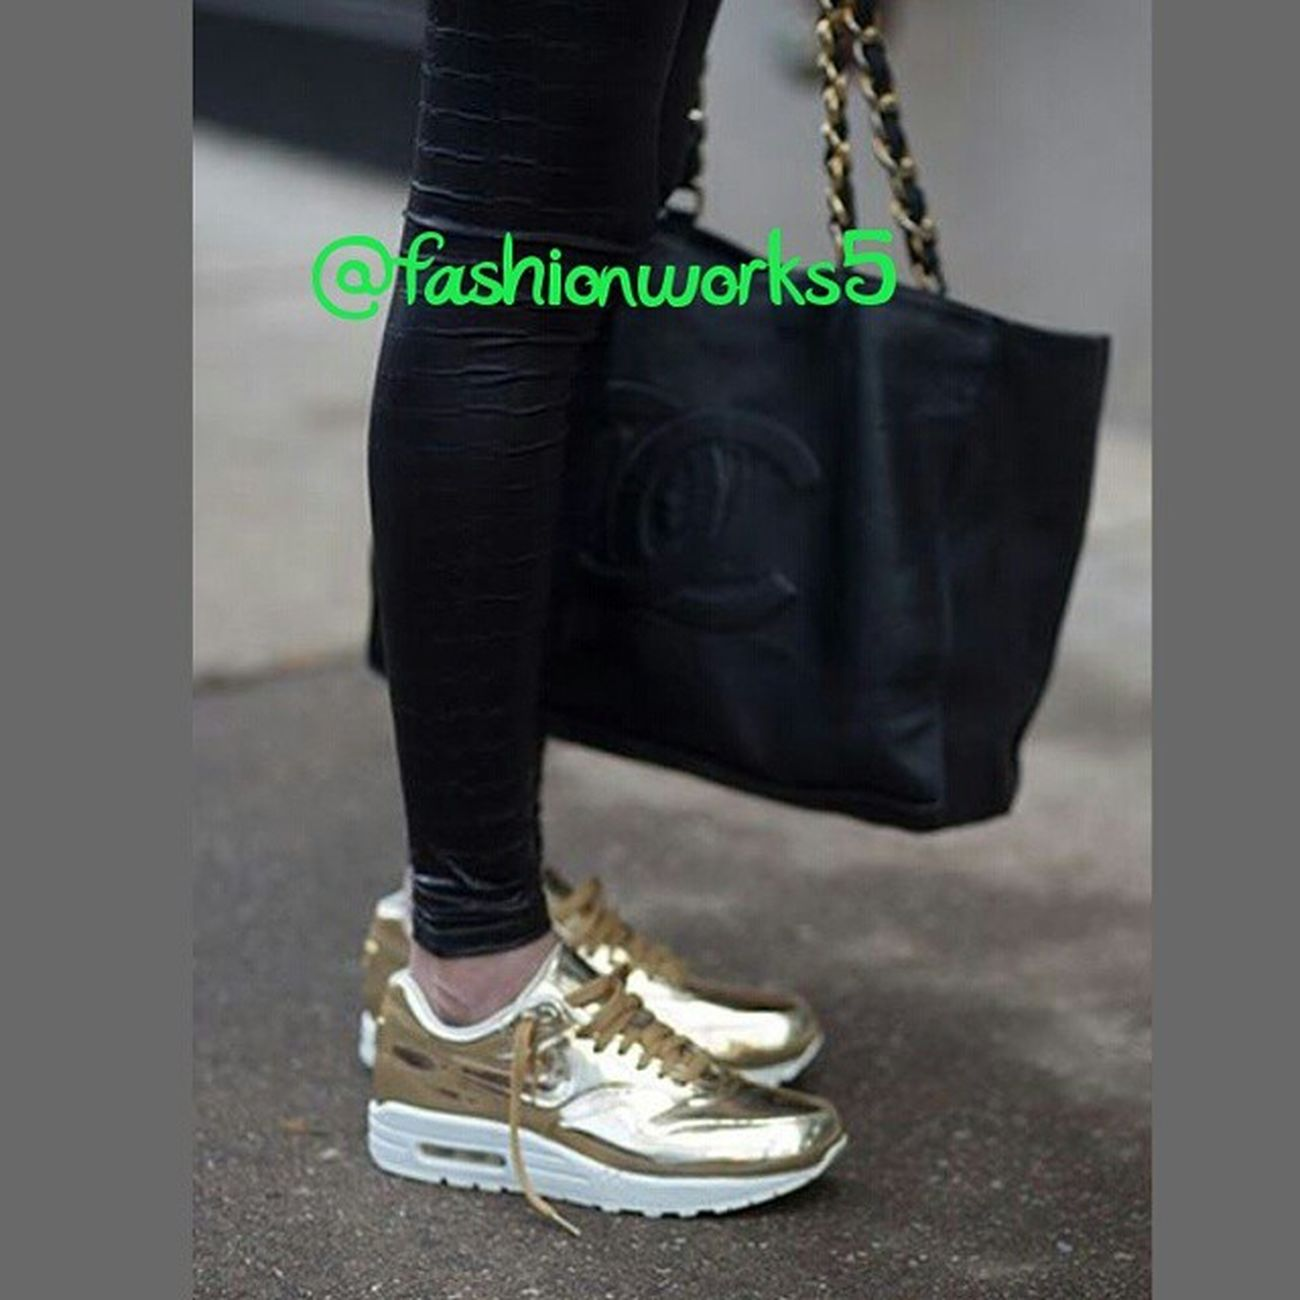 Fashionworkstv Trends HowtoStyle AllBlackandGold Chanel Bag paris Nikeair Nike airmax Gold Trainers instagood iamfashion iamfashionworks5